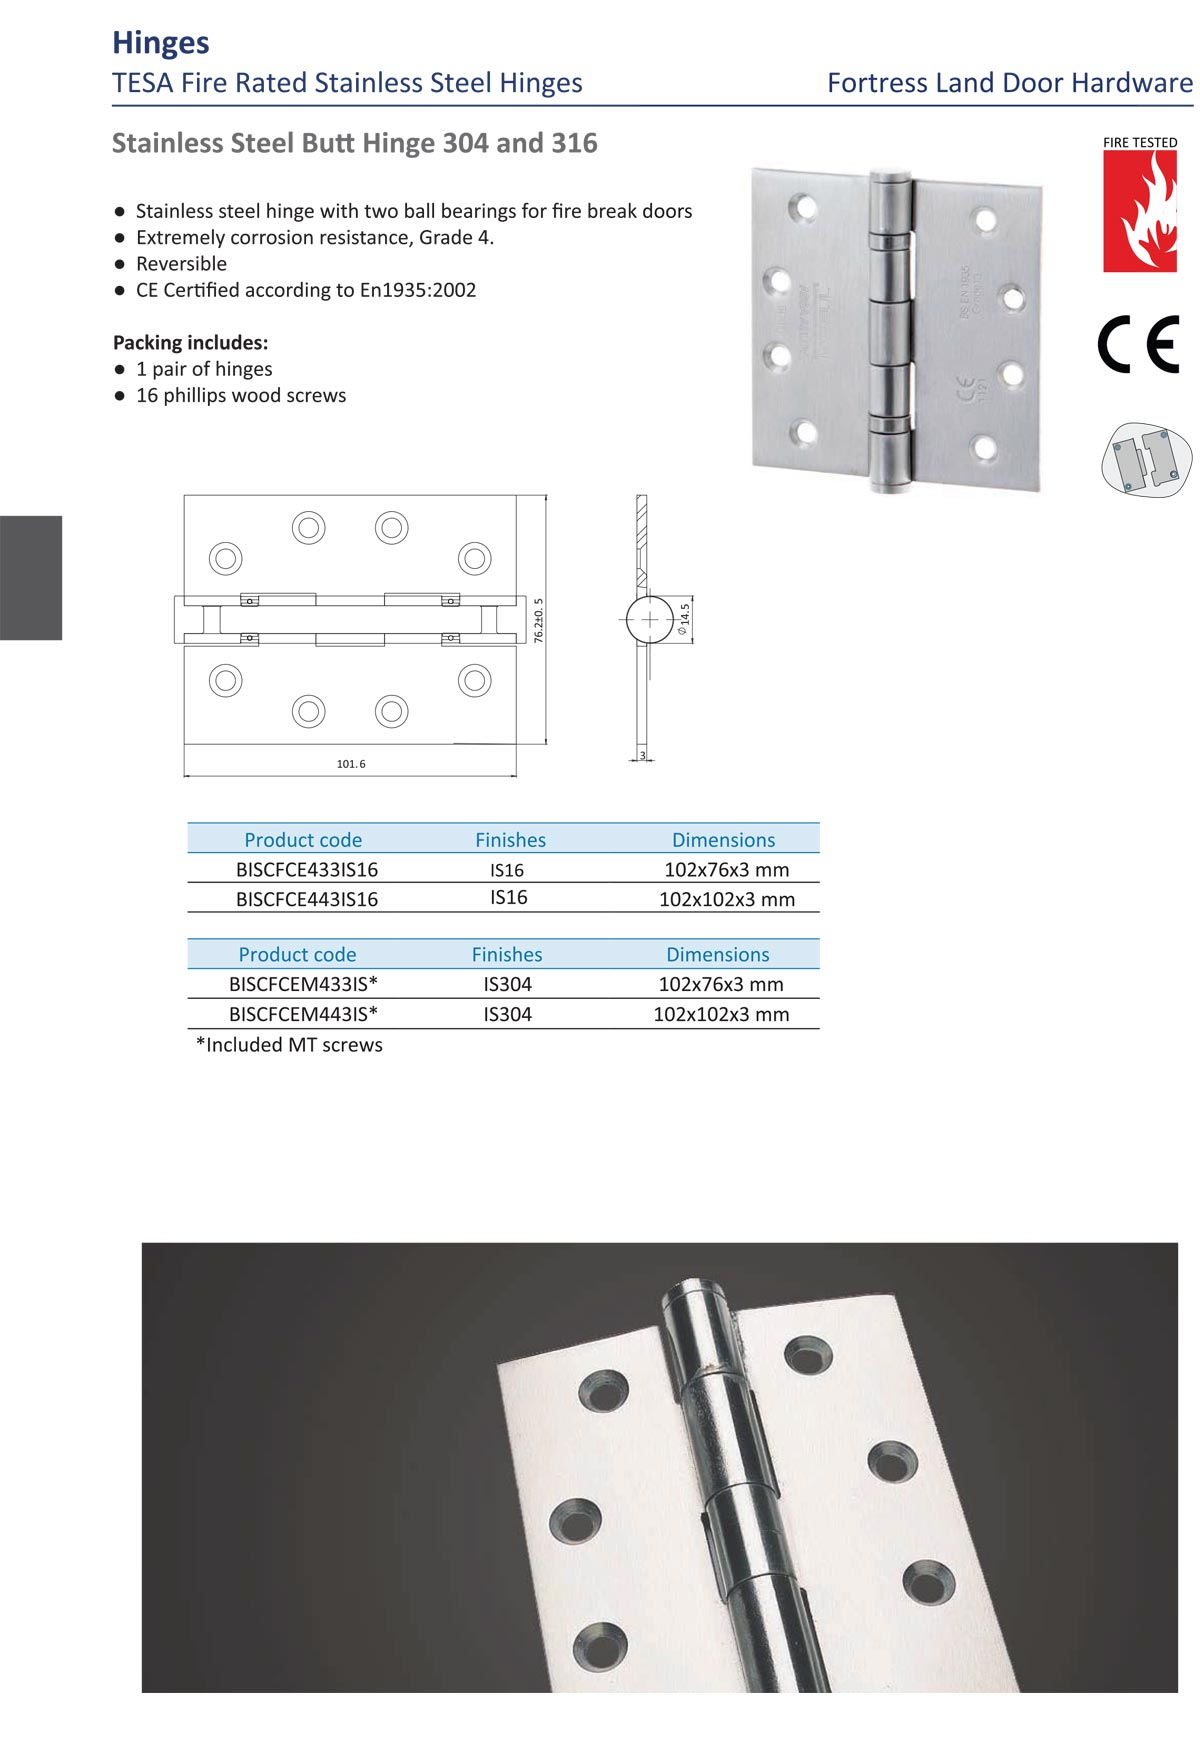 fire rated hinges, butt hinges, stainless steel hinge, 304 hinge, 316 hinge, weather proof hinge, door hinge myanmar, ASSA ABLOY Hinge, Fortress land Security Company, Yangon, Myanmar